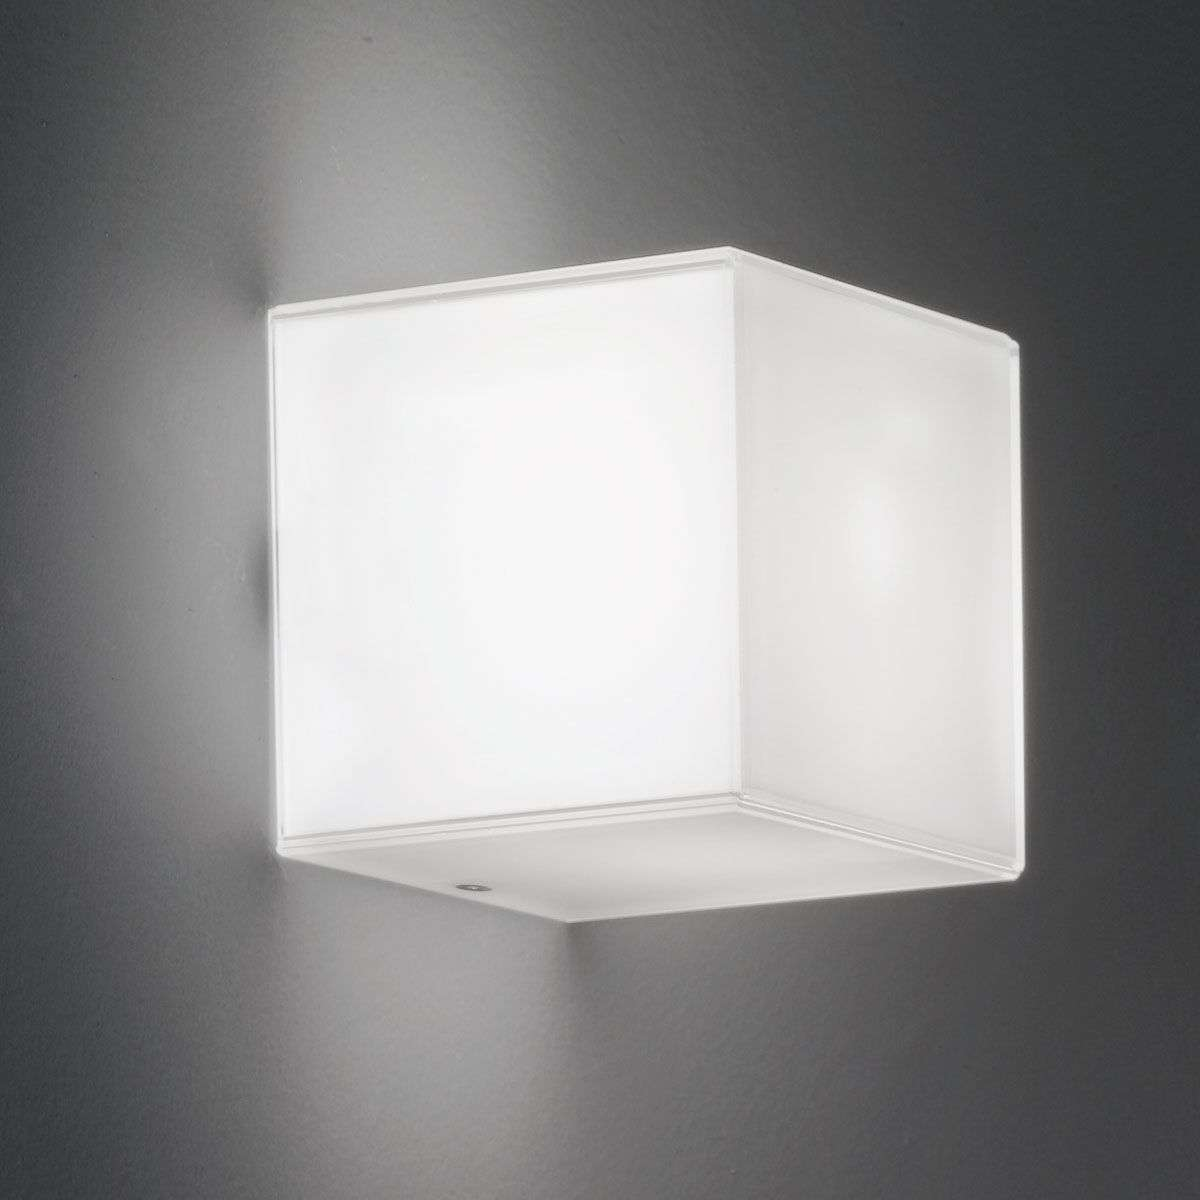 Cube shaped glass wall light compact with leds lights cube shaped glass wall light compact with leds 9010115 31 aloadofball Images